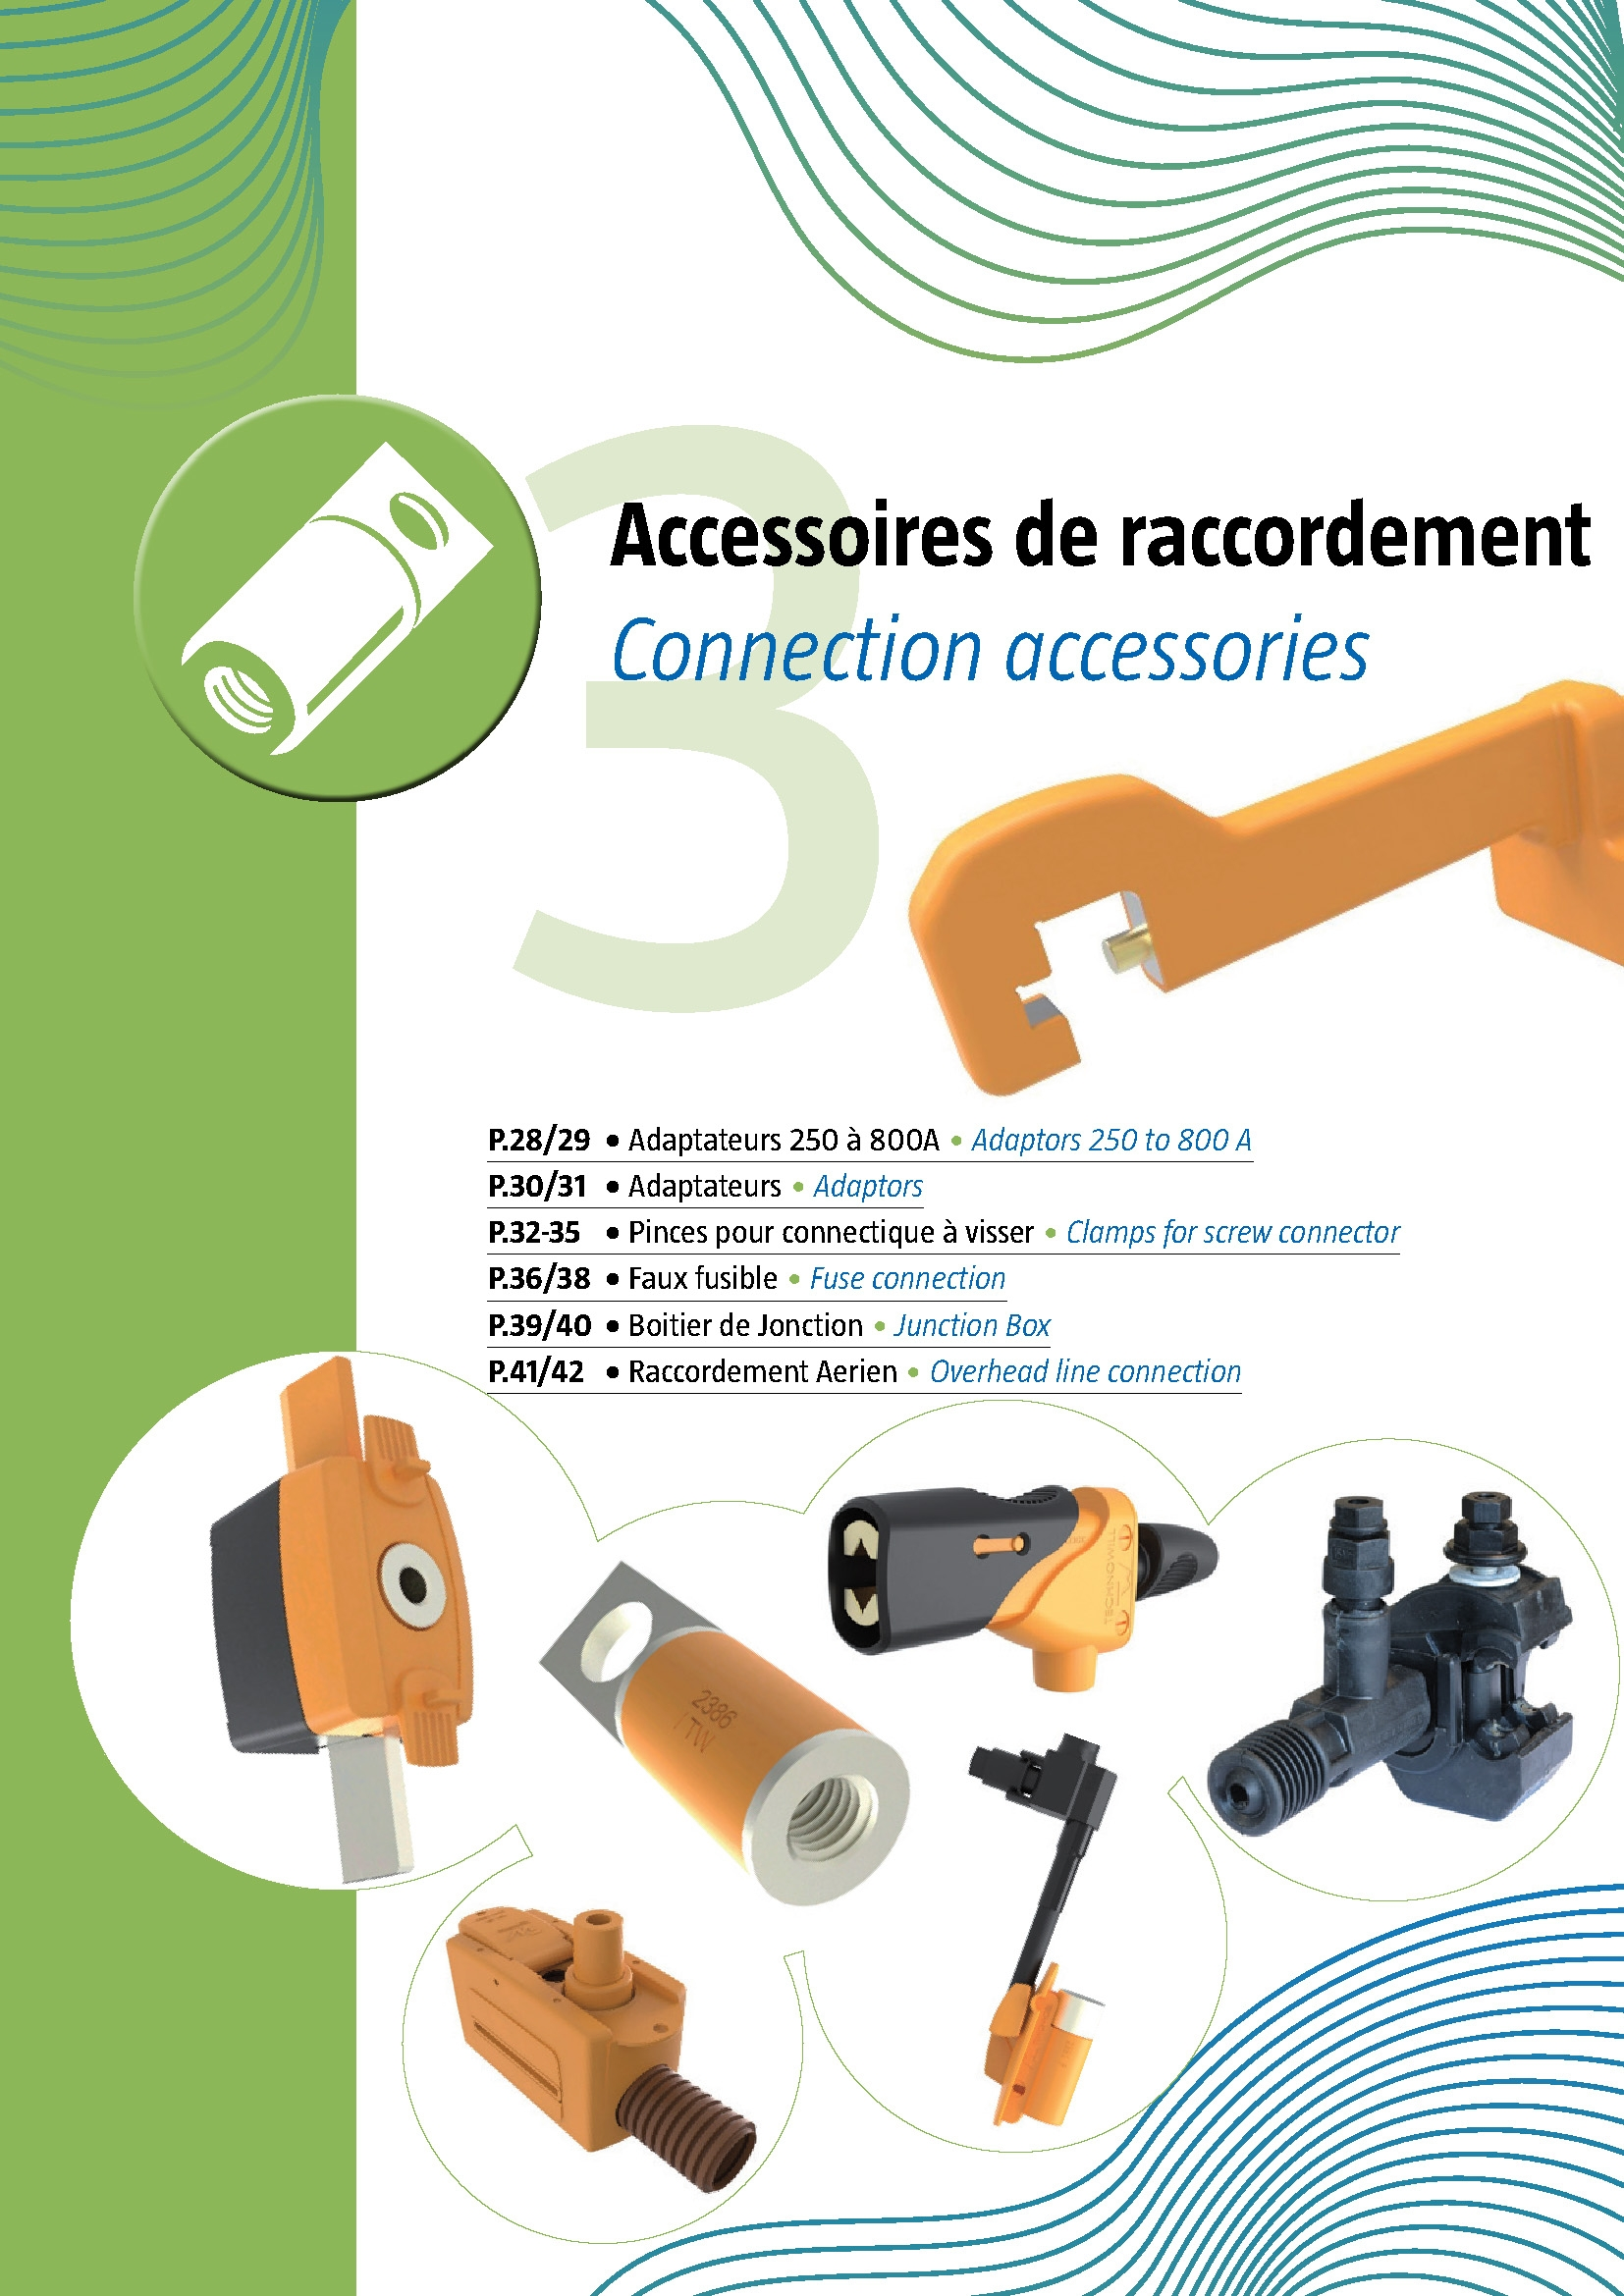 3 Connection Accessories